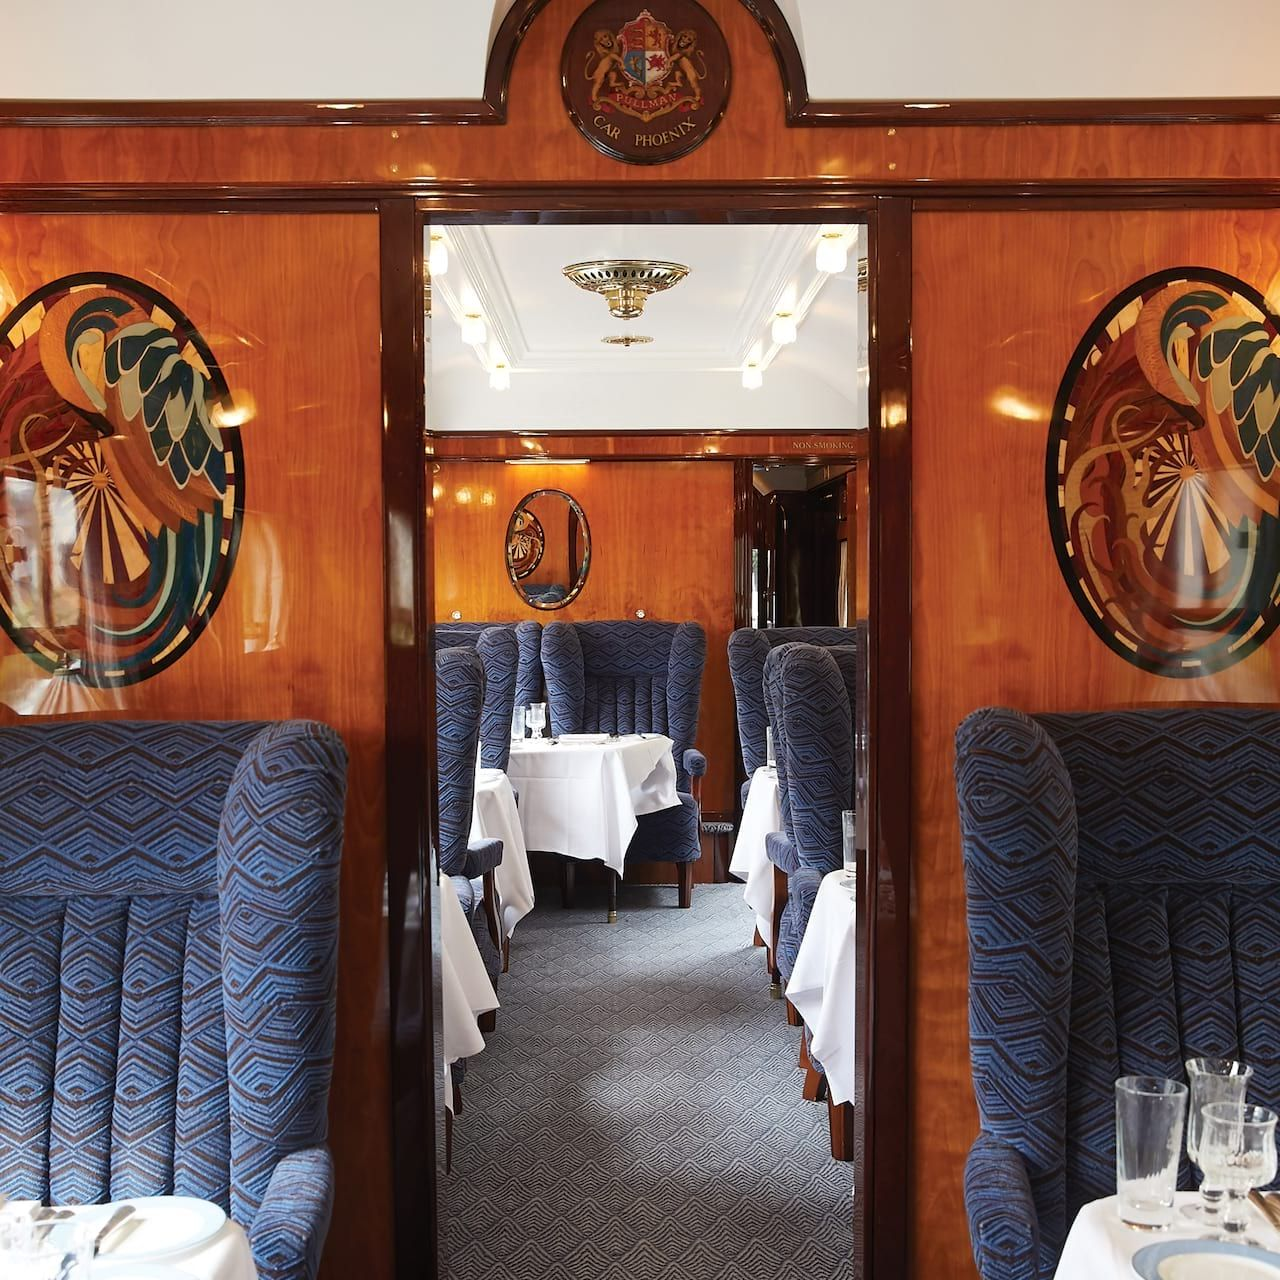 British Pullman train car